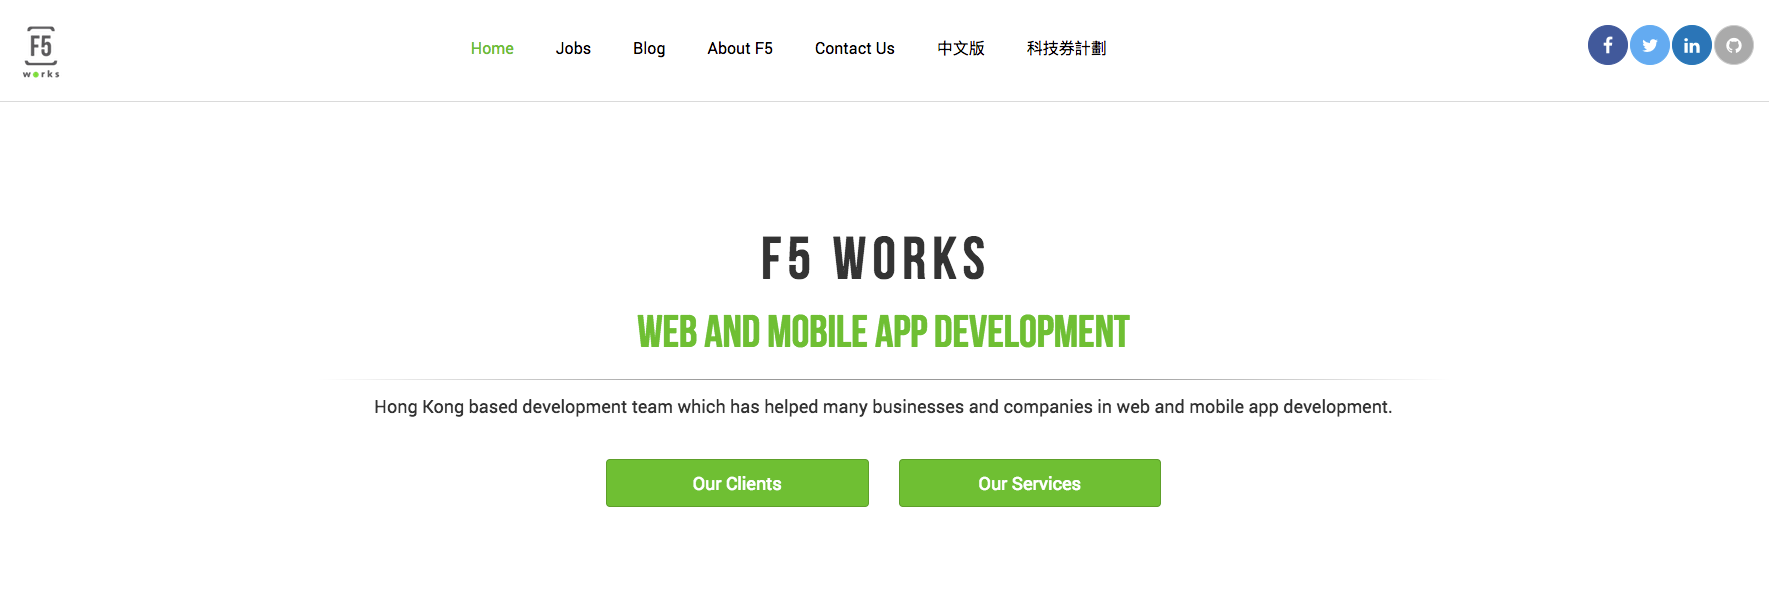 Retrospective: F5 Works history and future